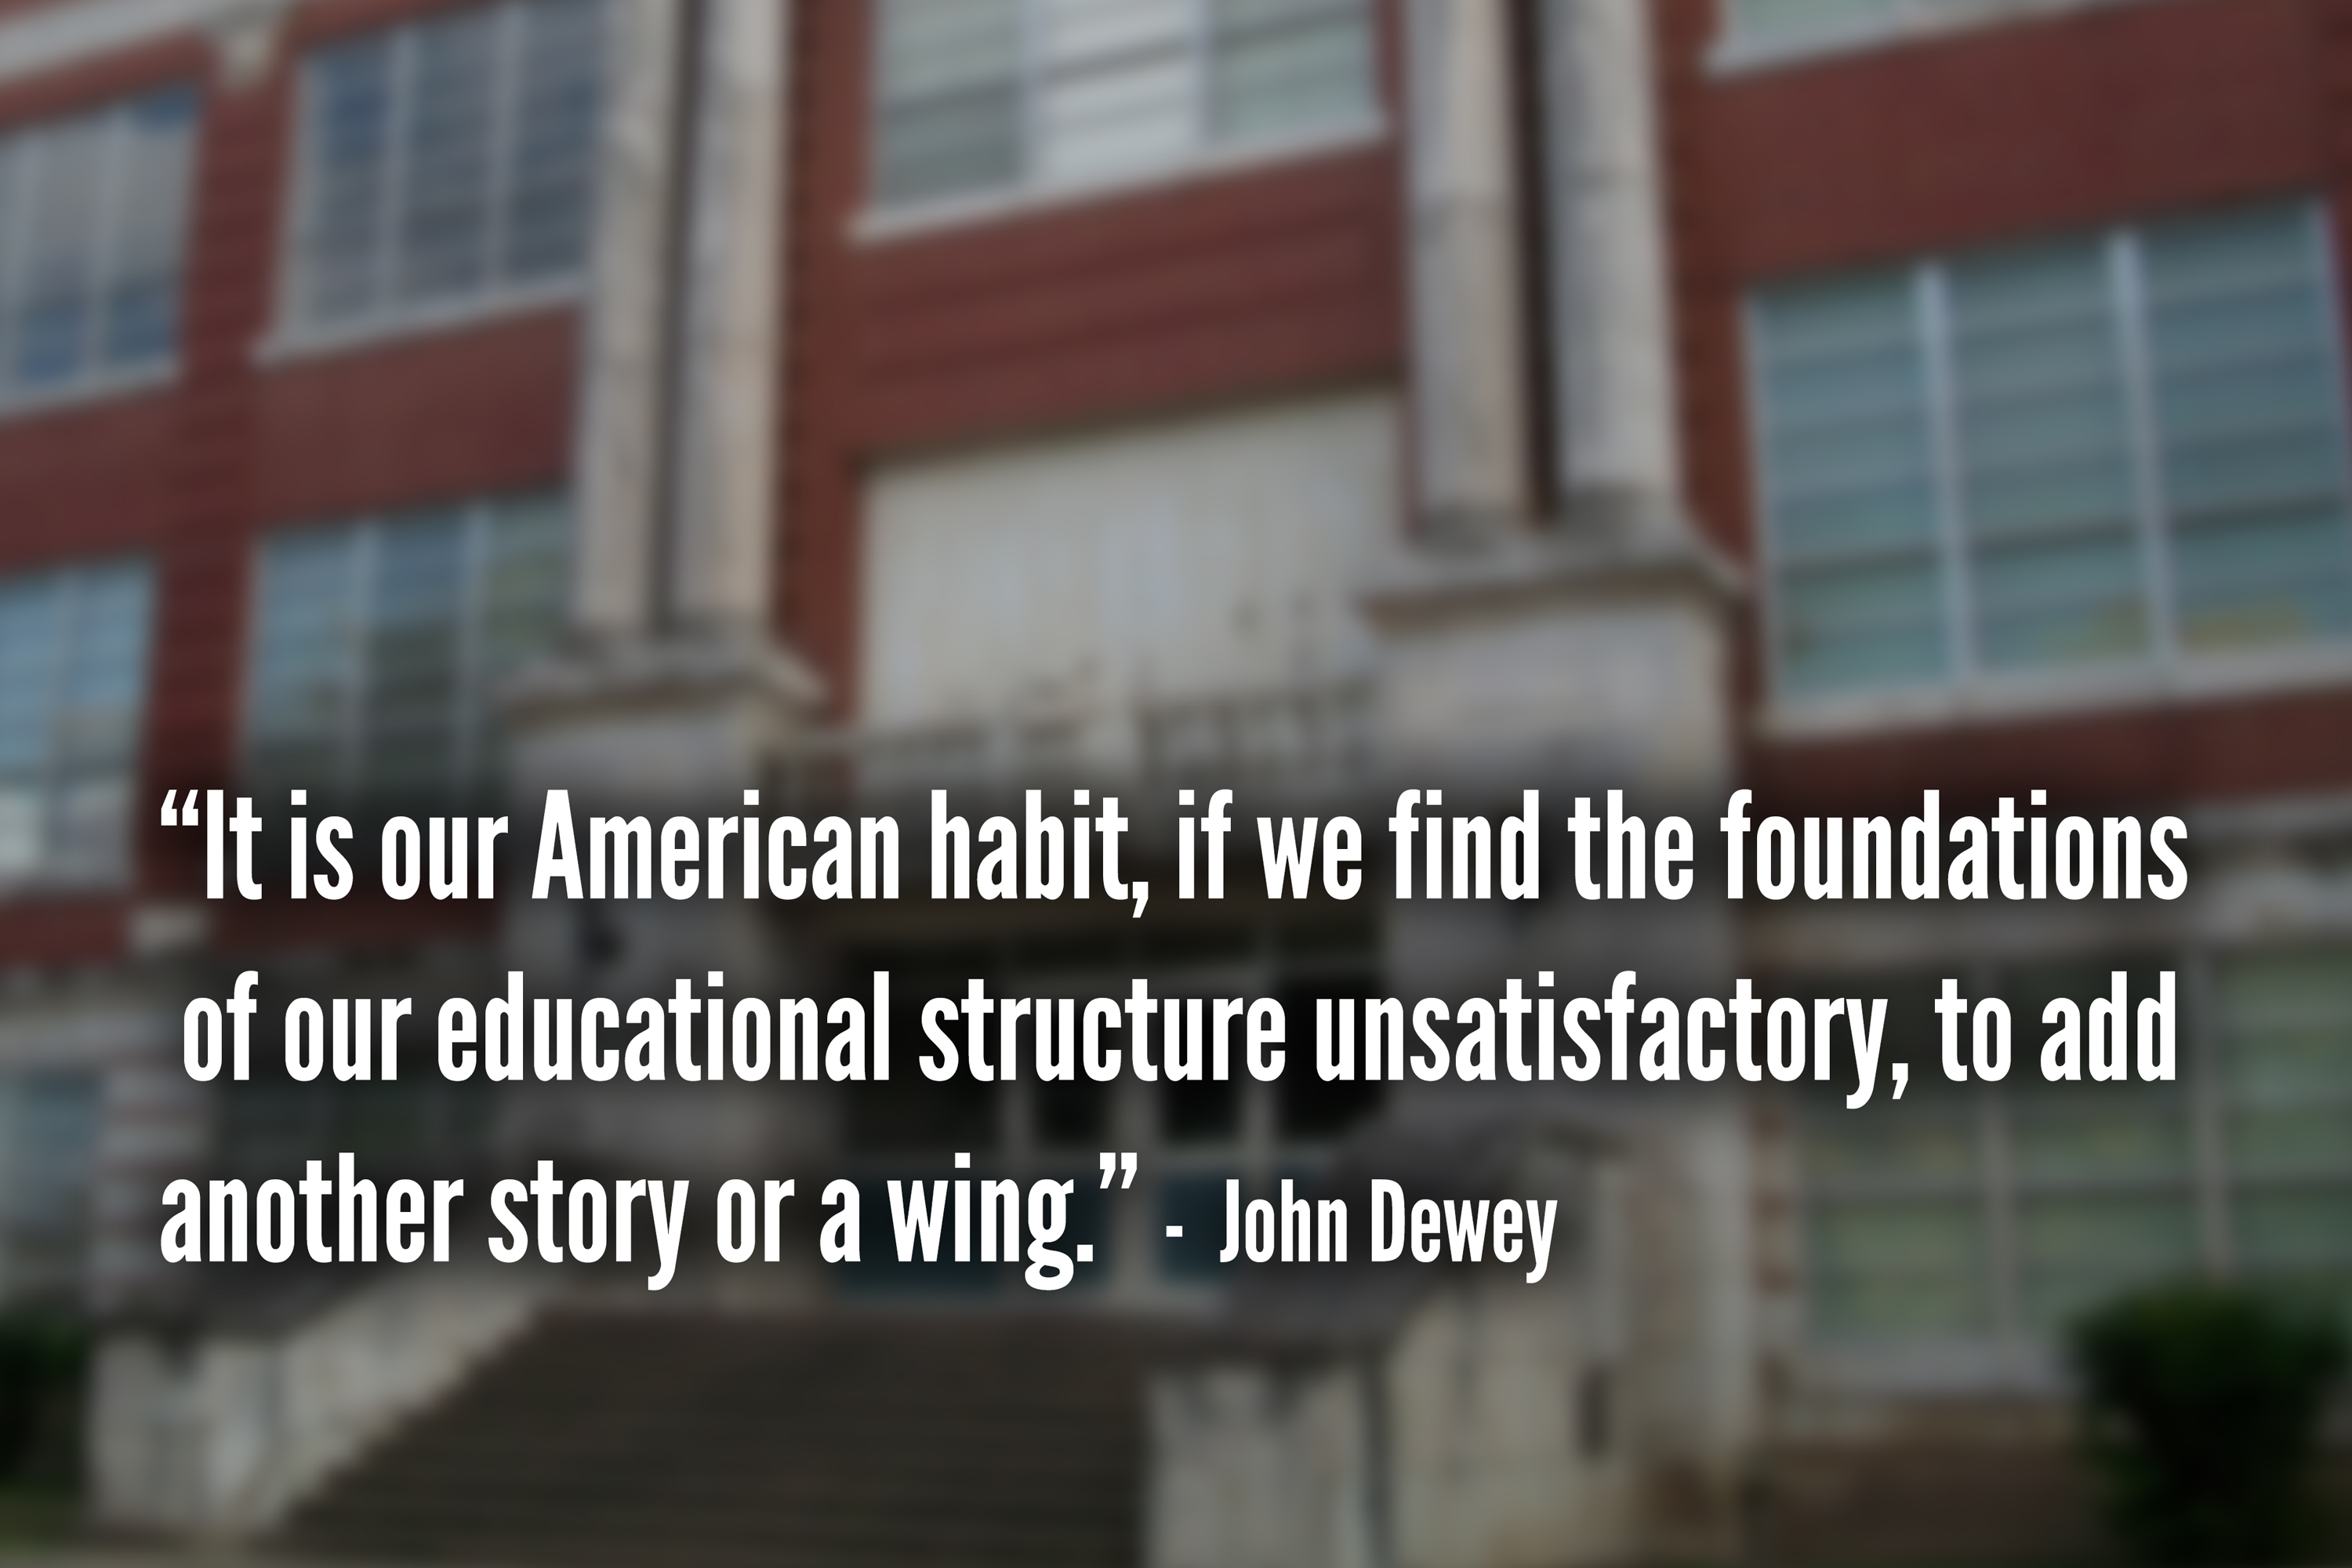 It is our American habit, if we find the foundations of our educational structure unsatisfactory, to add another story or a wing.